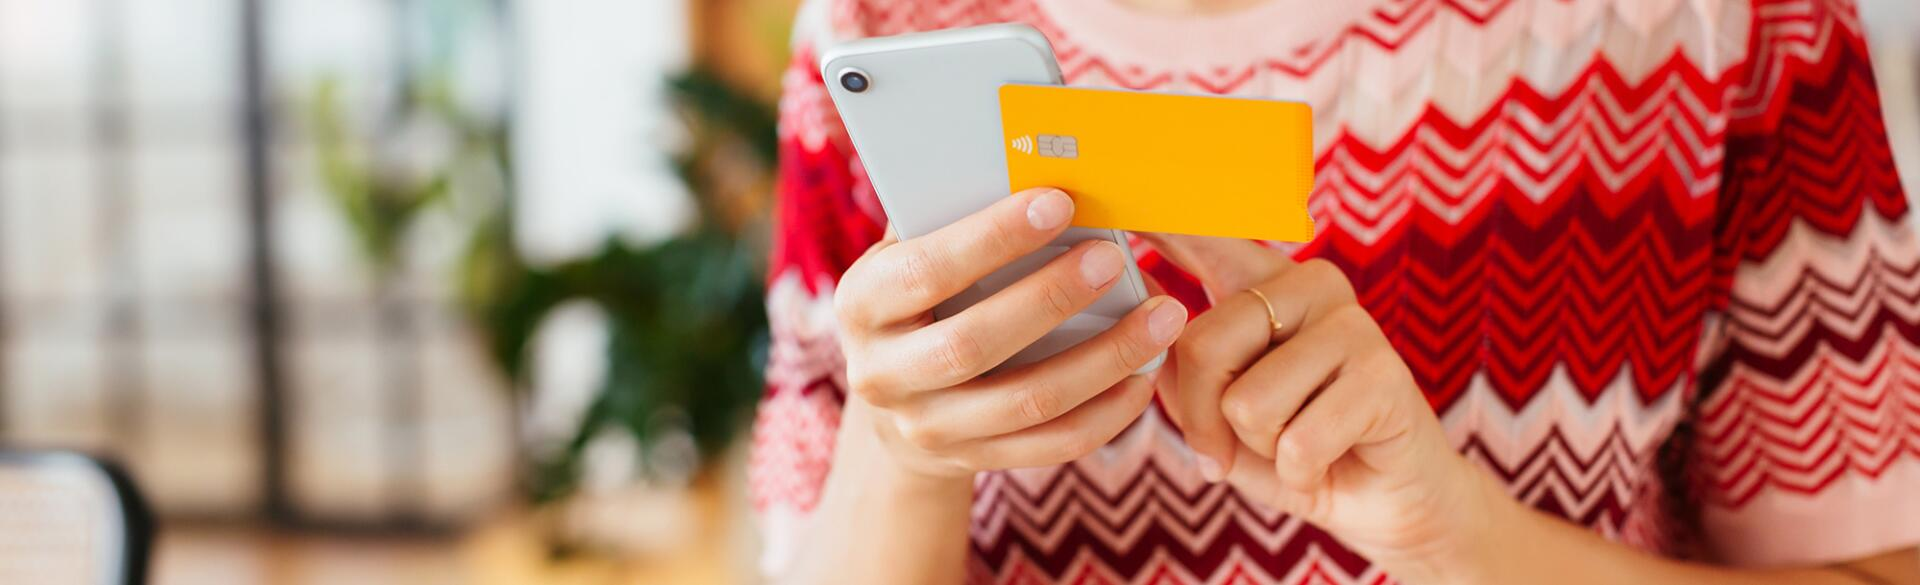 Crop Woman Using Smartphone For Online Shopping